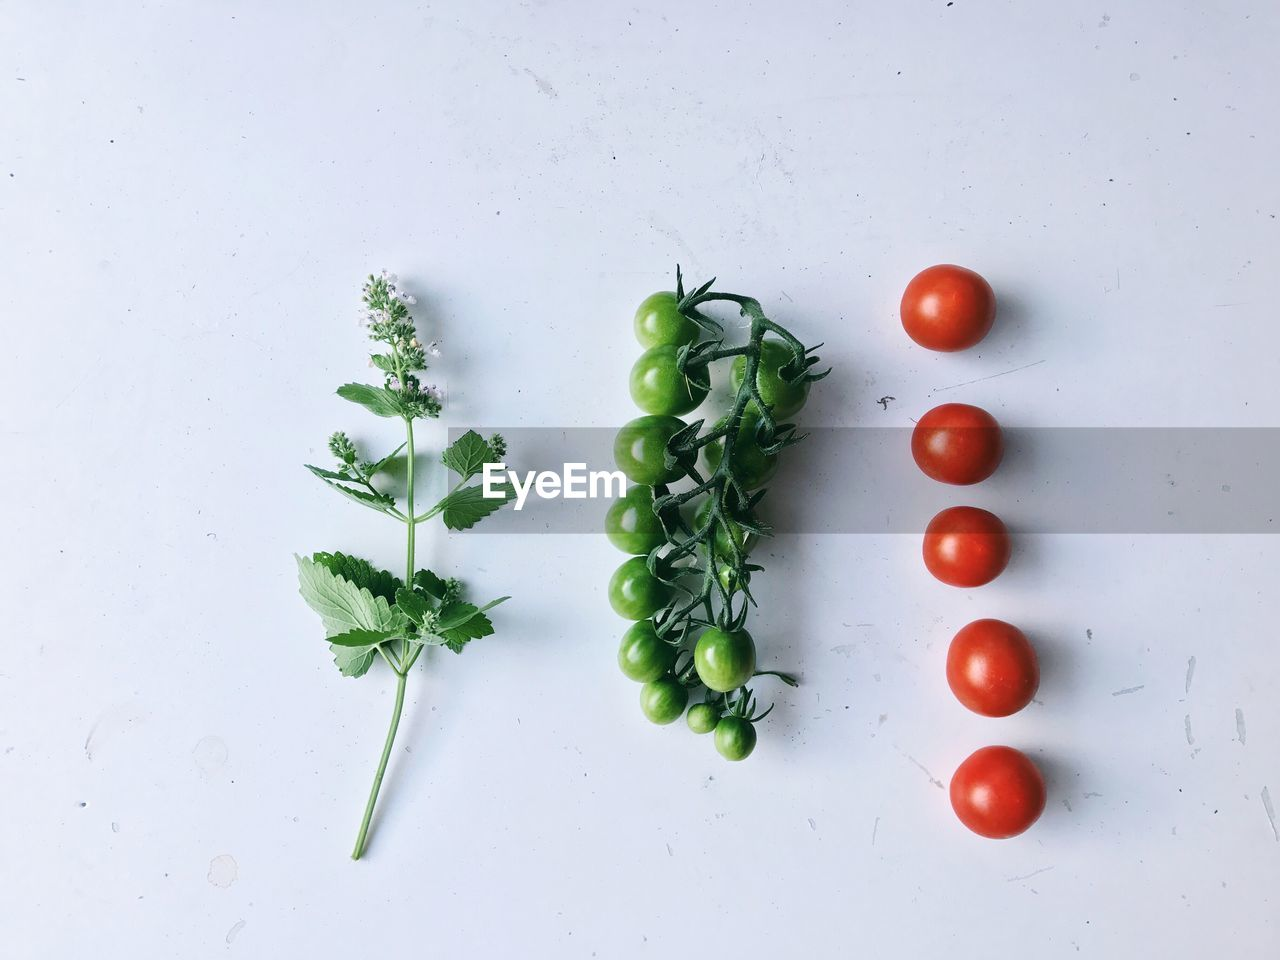 vegetable, food and drink, food, tomato, freshness, wellbeing, healthy eating, green color, indoors, directly above, no people, still life, fruit, red, cherry tomato, raw food, herb, white color, studio shot, close-up, vegetarian food